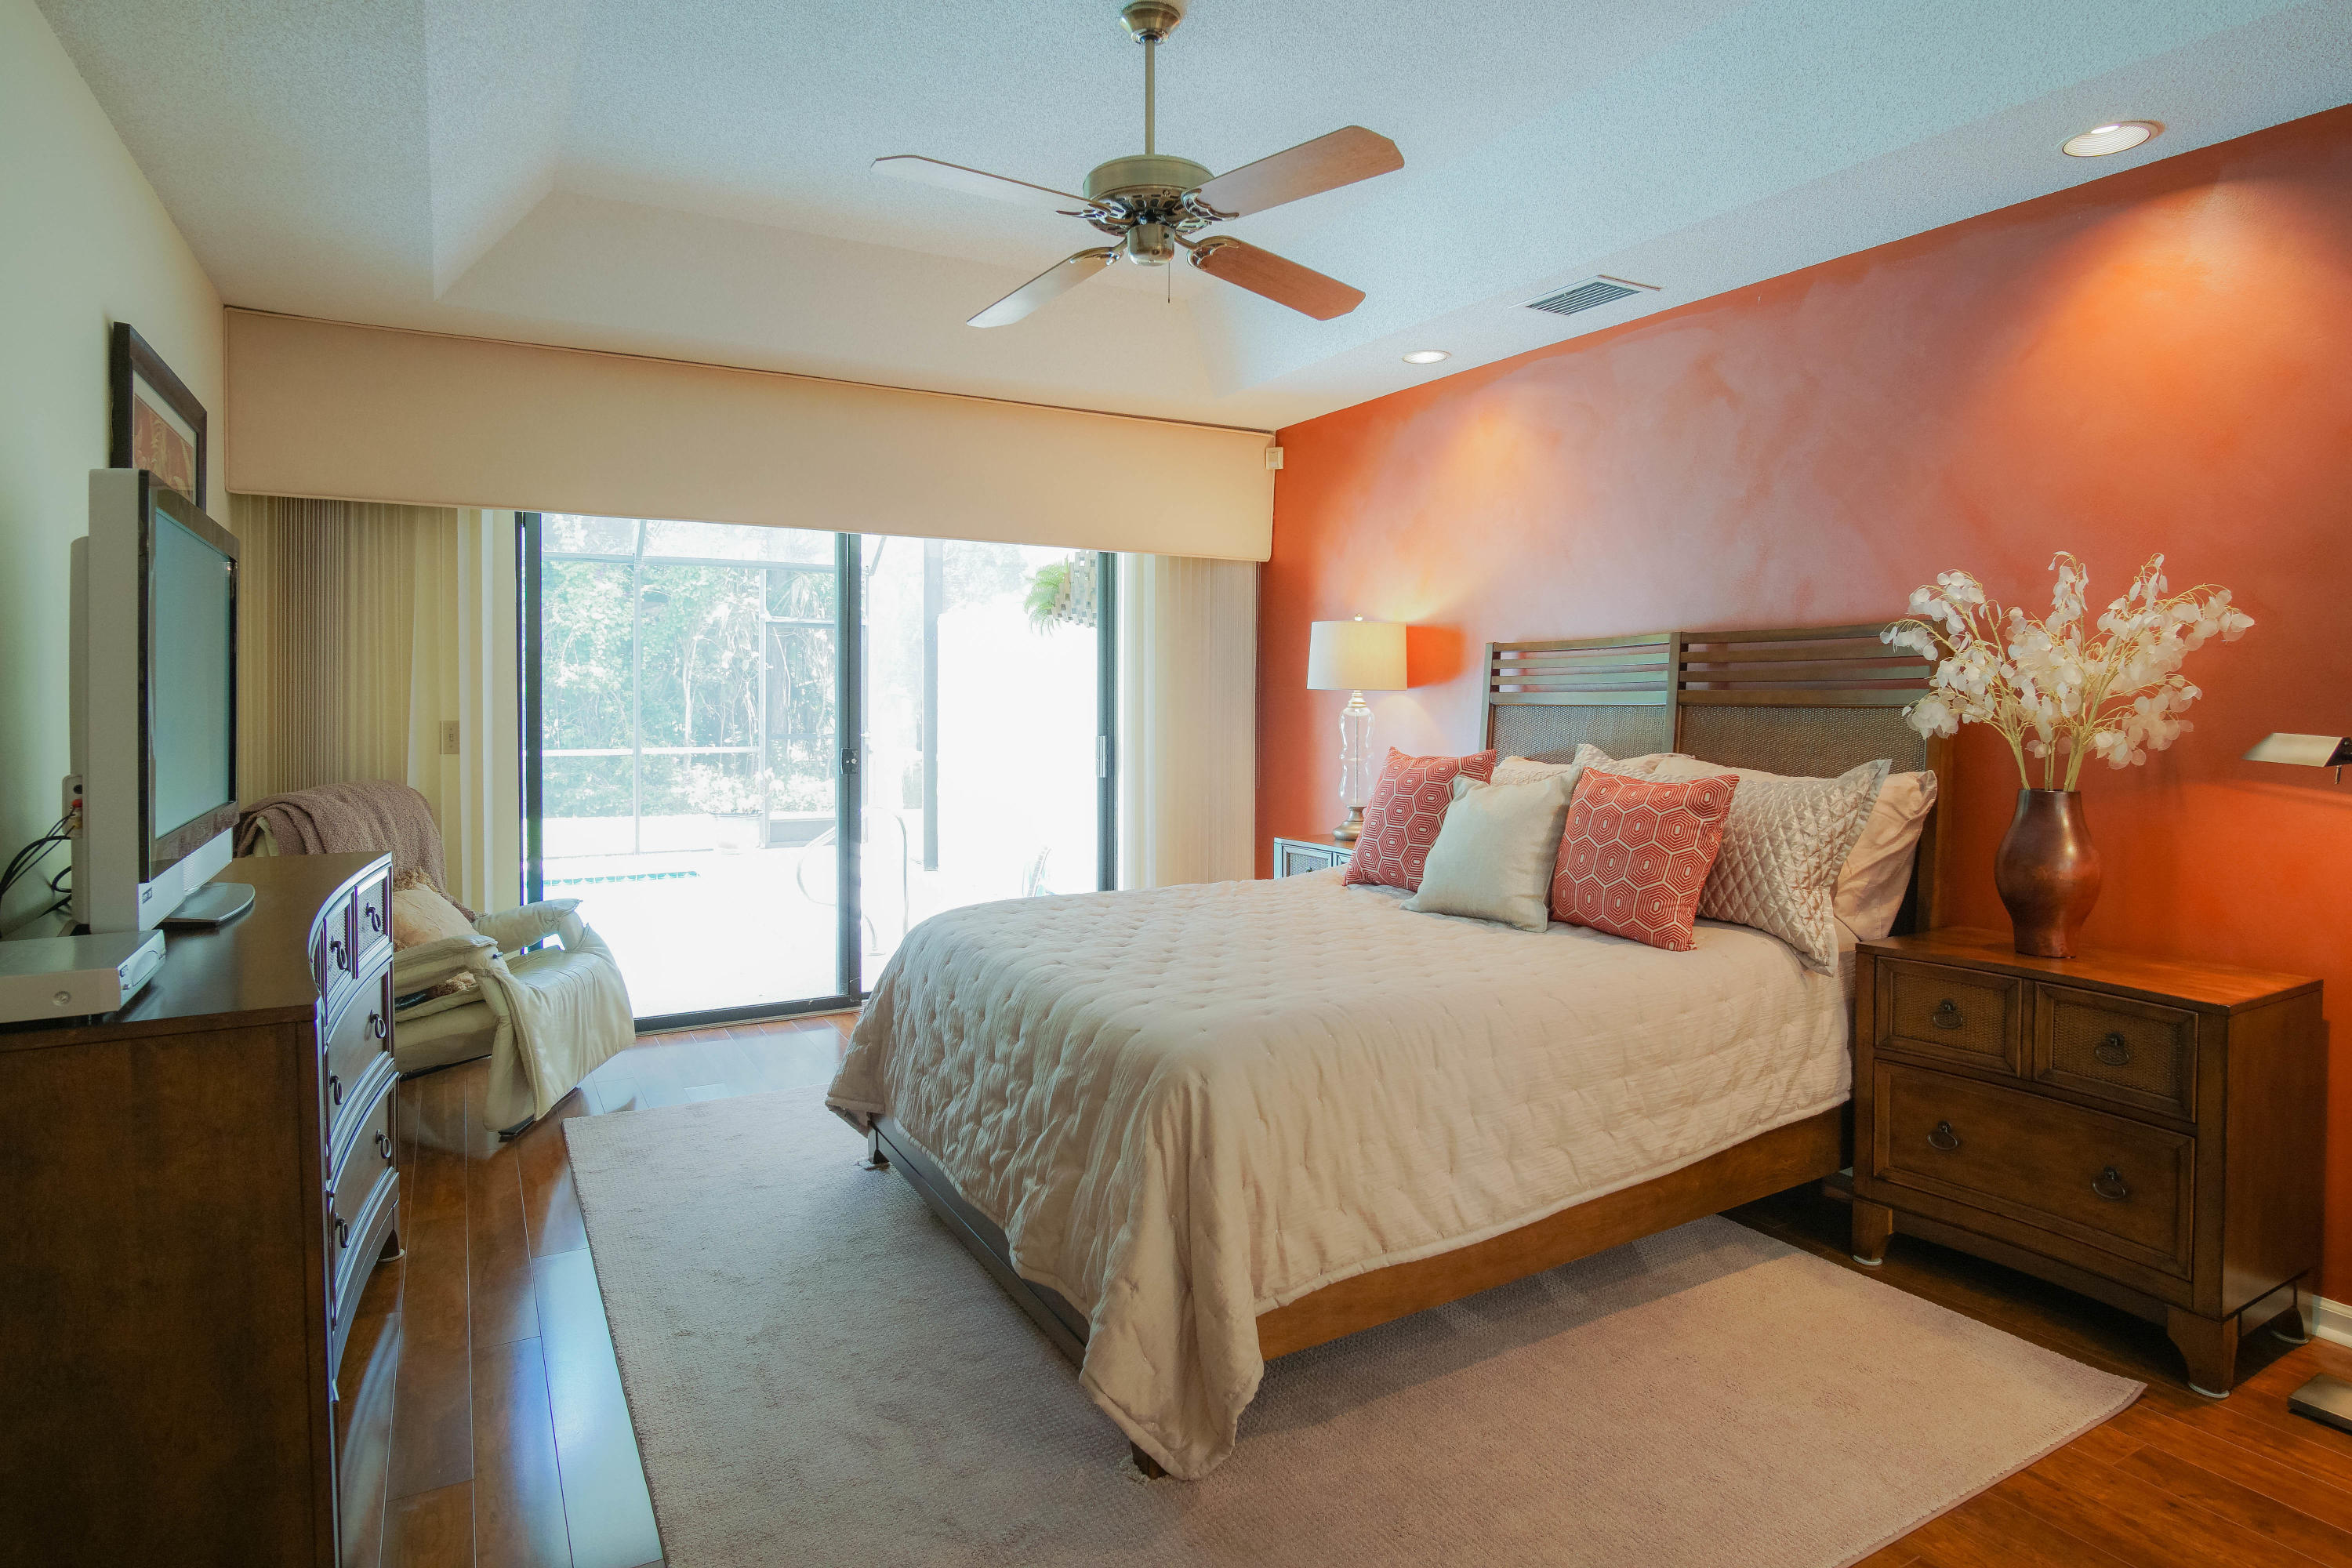 BREAKERS WEST HOMES FOR SALE